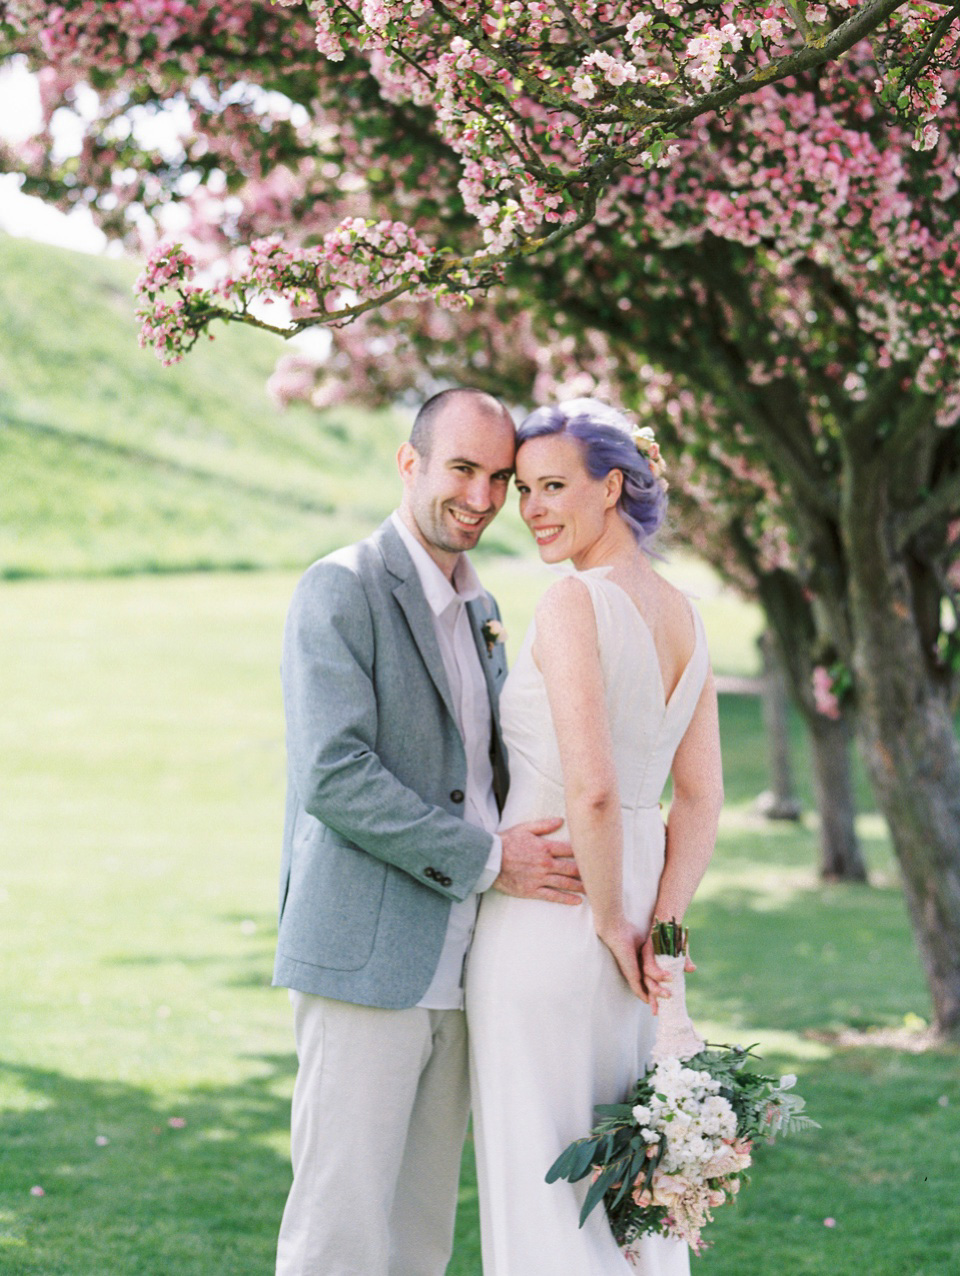 Lilac Hair and Pastel Flowers for an Intimate Springtime Pub Wedding (Weddings )